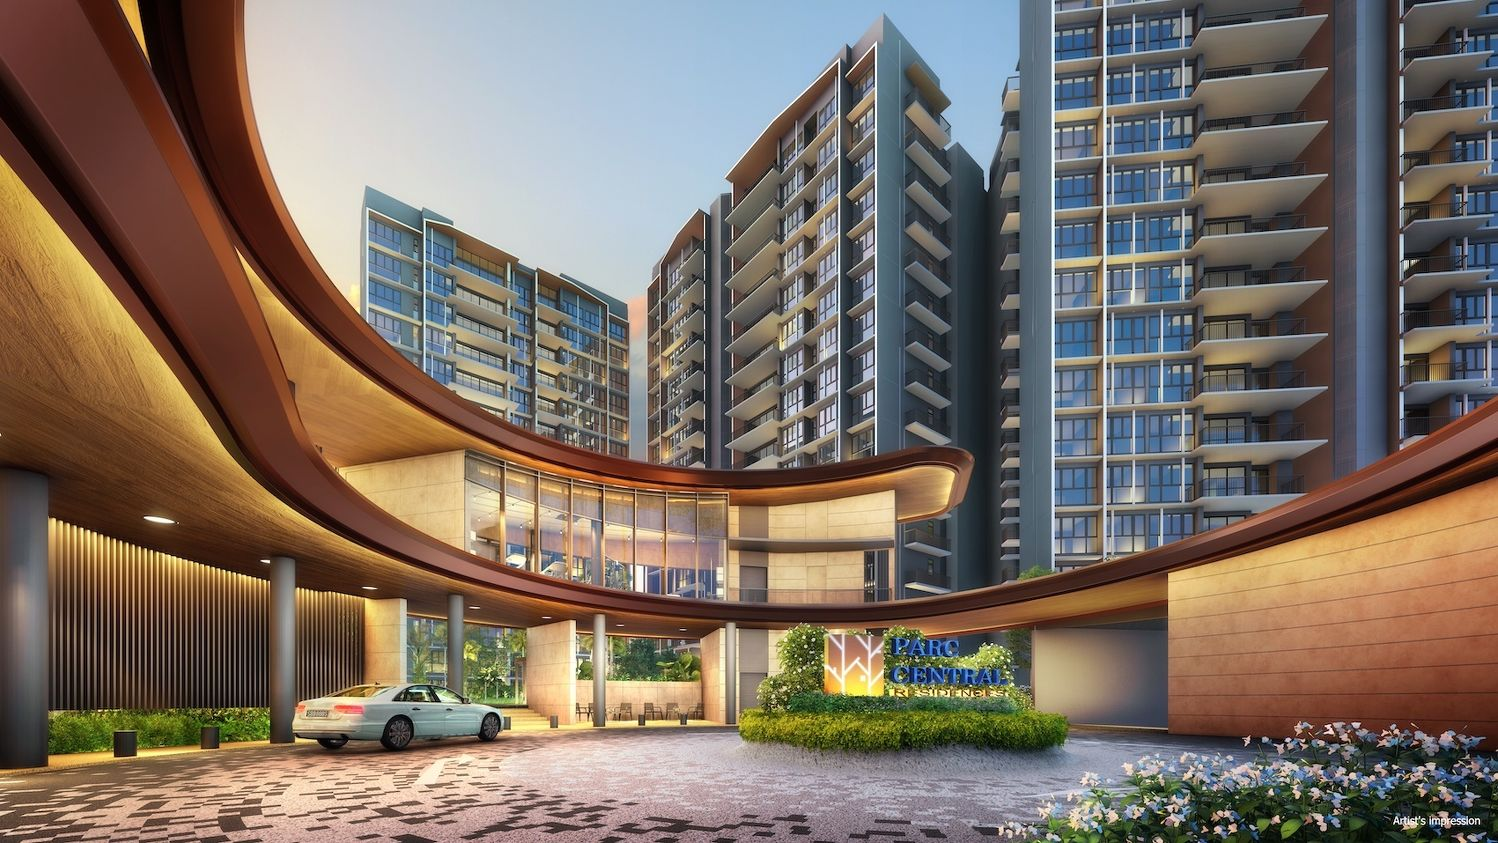 UPDATE] Hoi Hup-Sunway sell 59% of units at Parc Central Residences at  launch - Singapore Property News